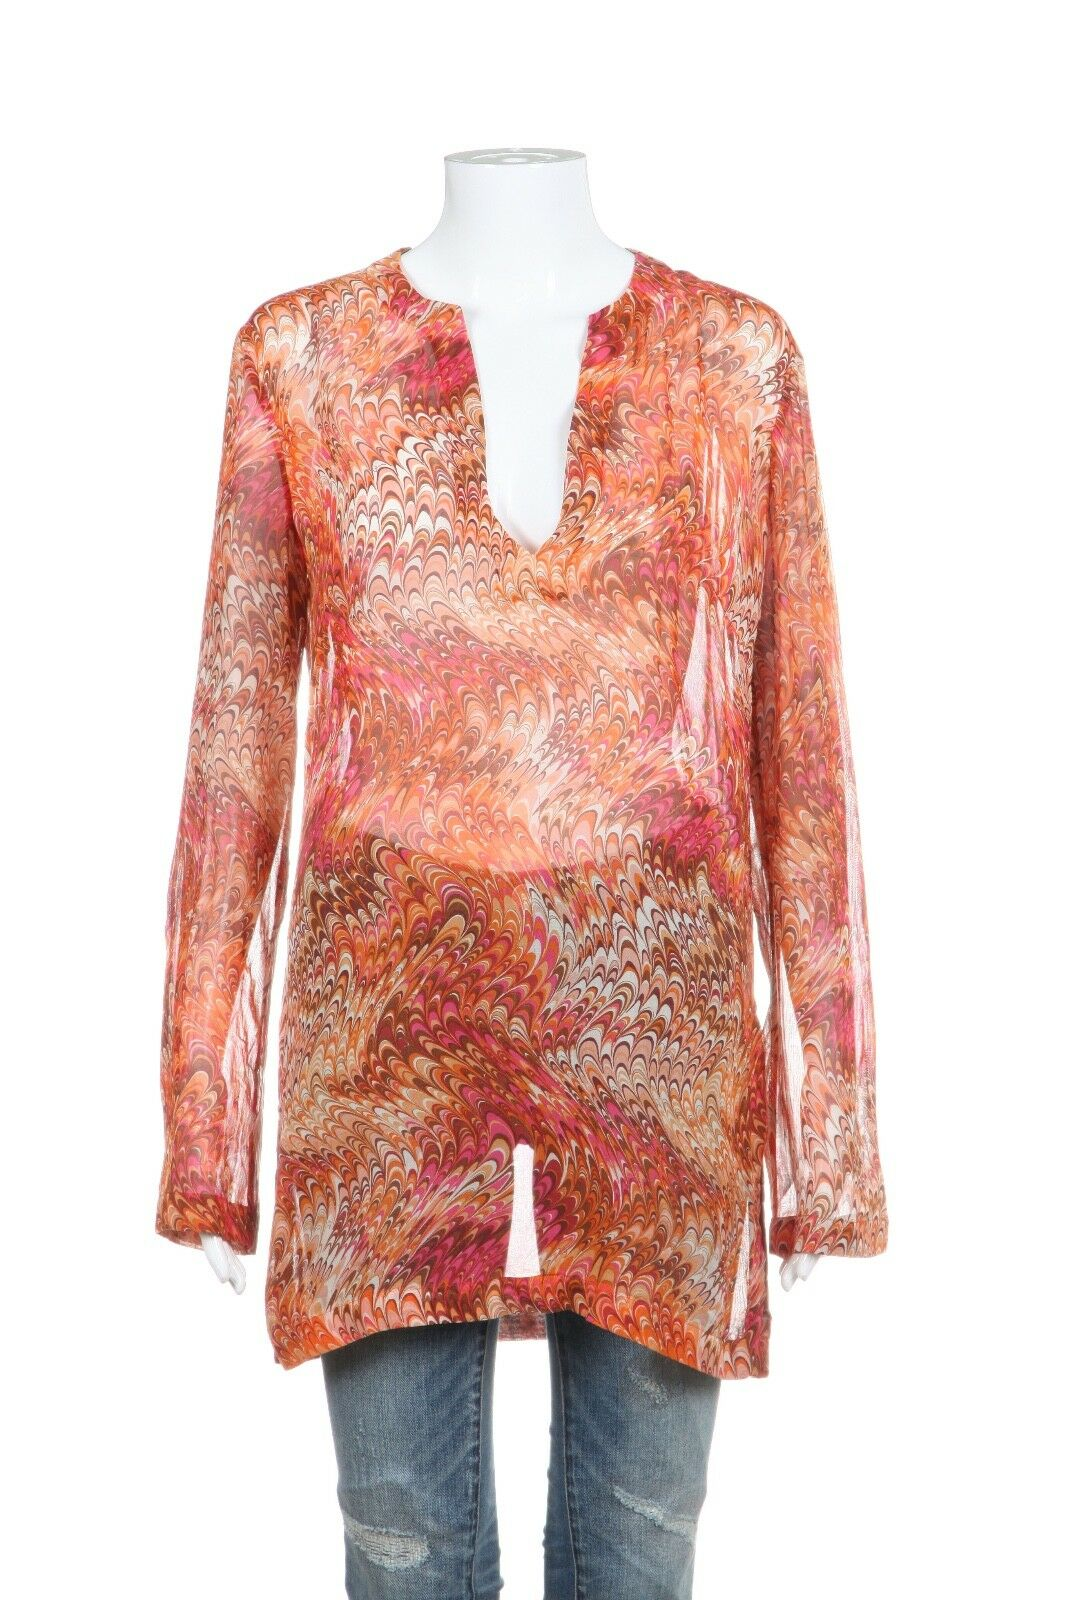 CELINE Sheer Blouse 100% Silk Orange Pink Abstract Print Top Size FR40